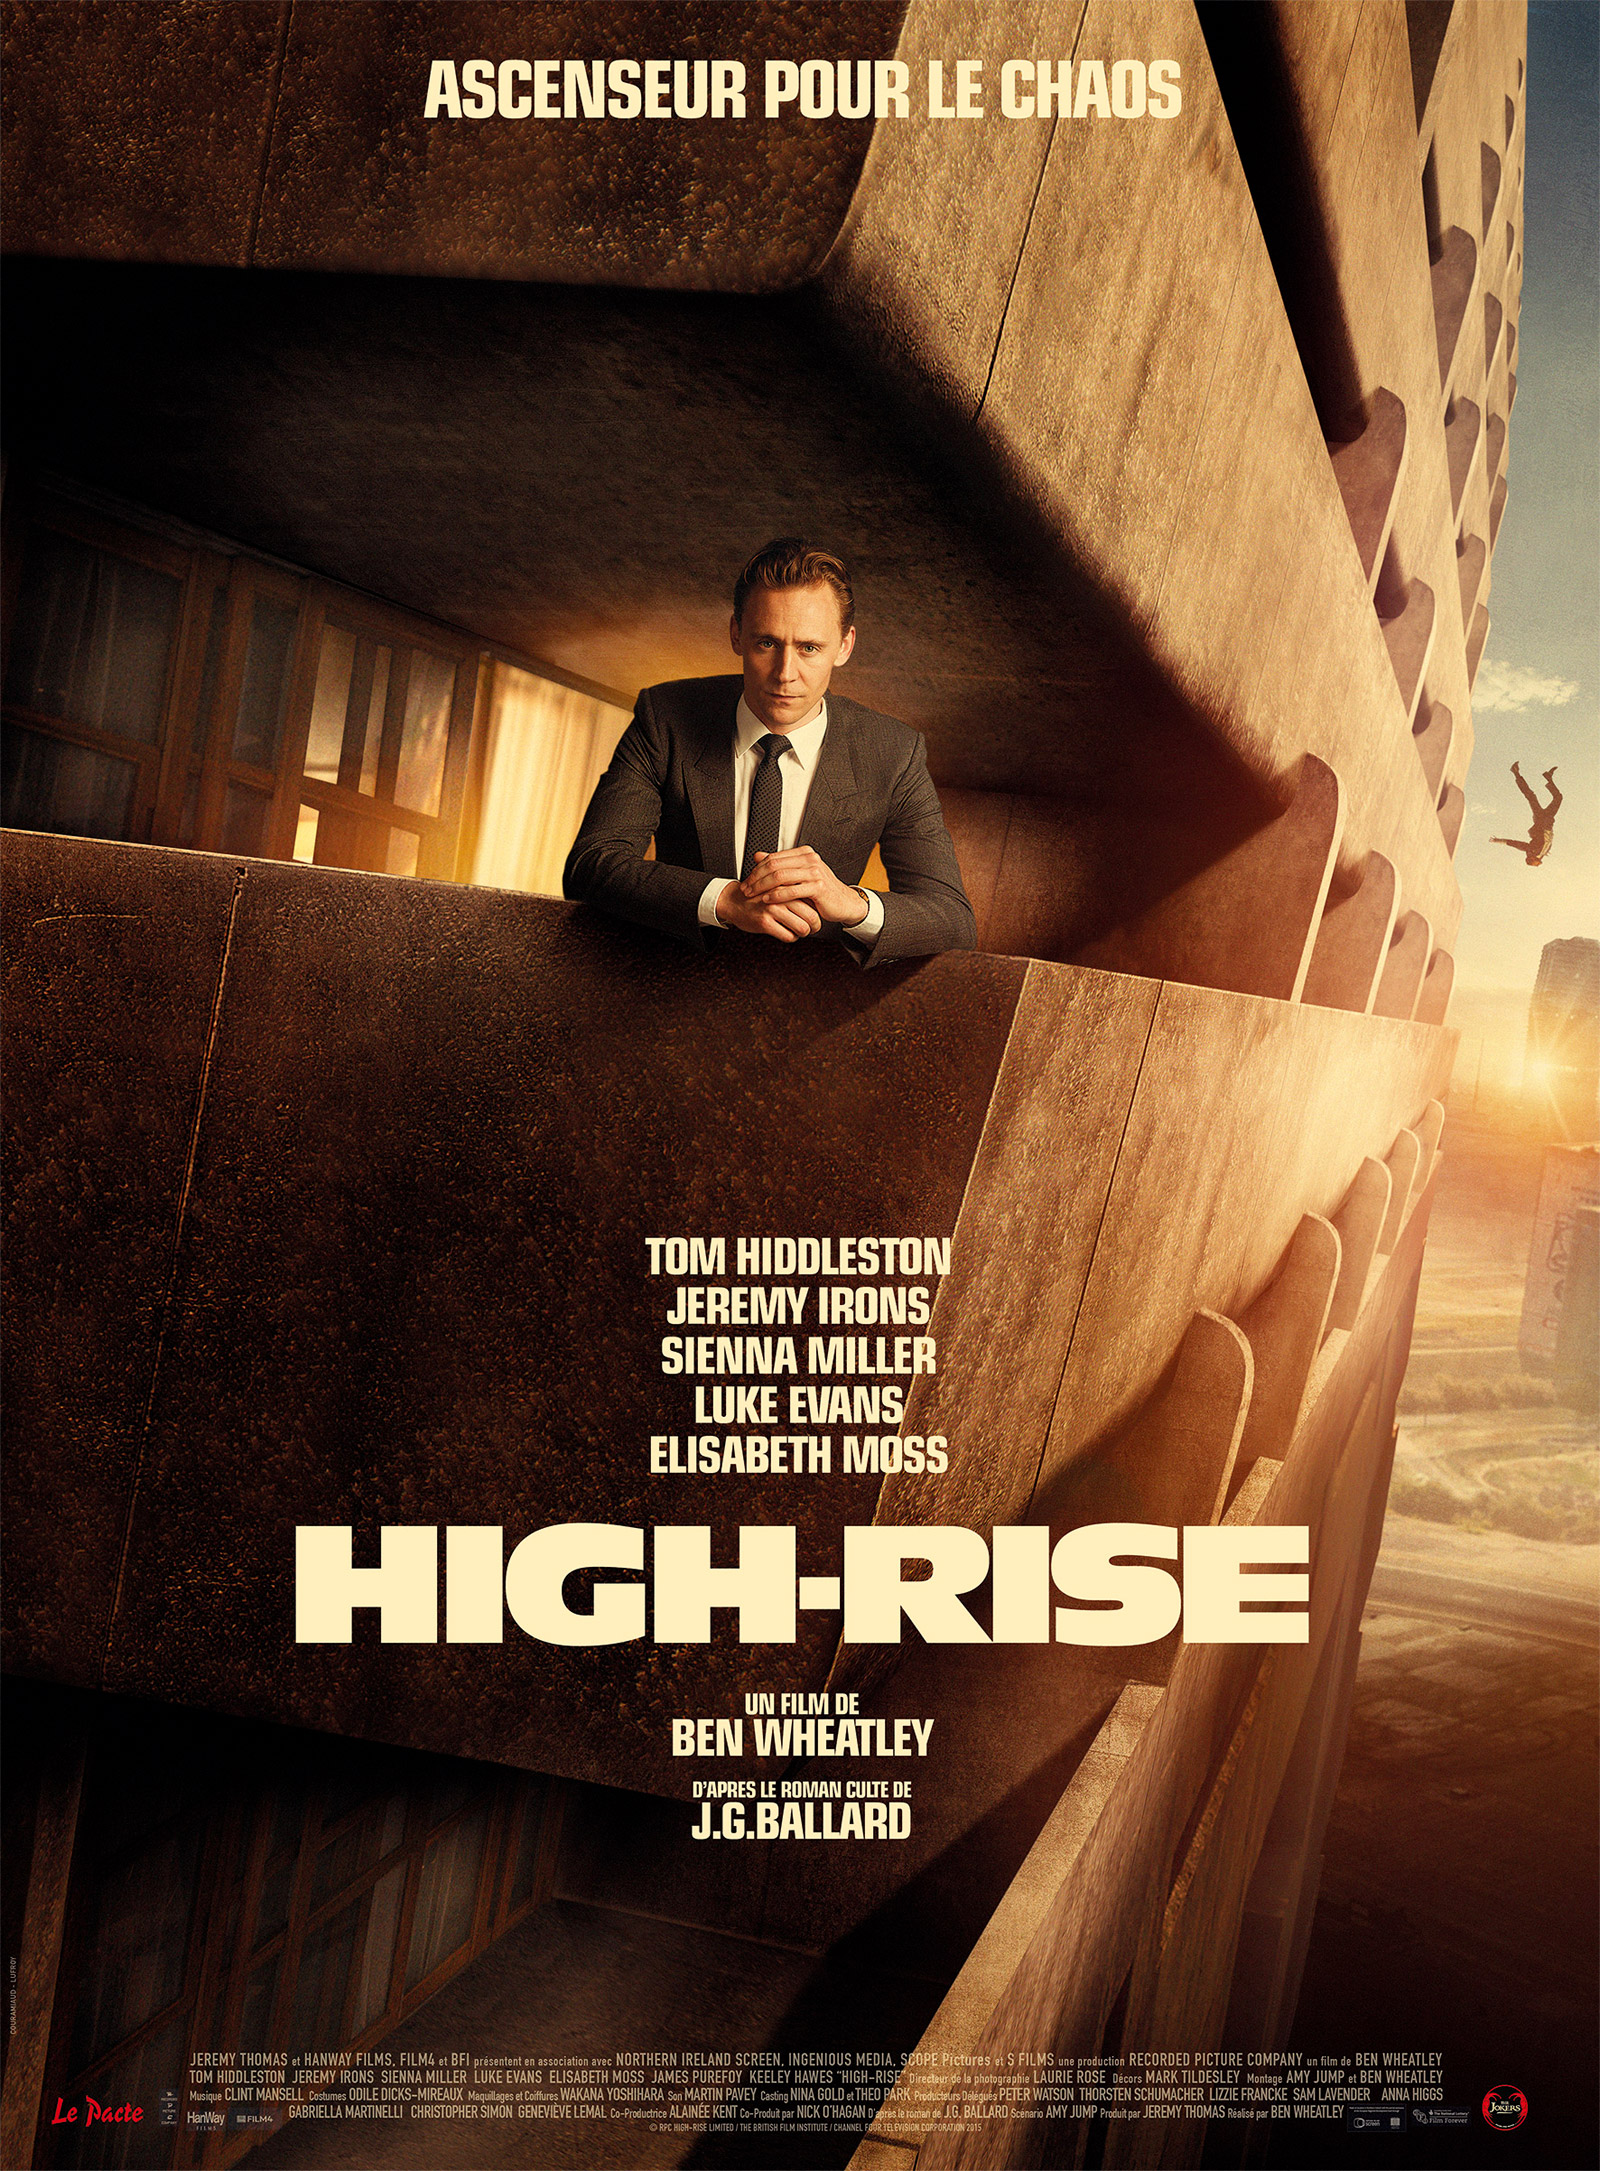 critique High Rise - Wes Bentley - Tom Hiddleston